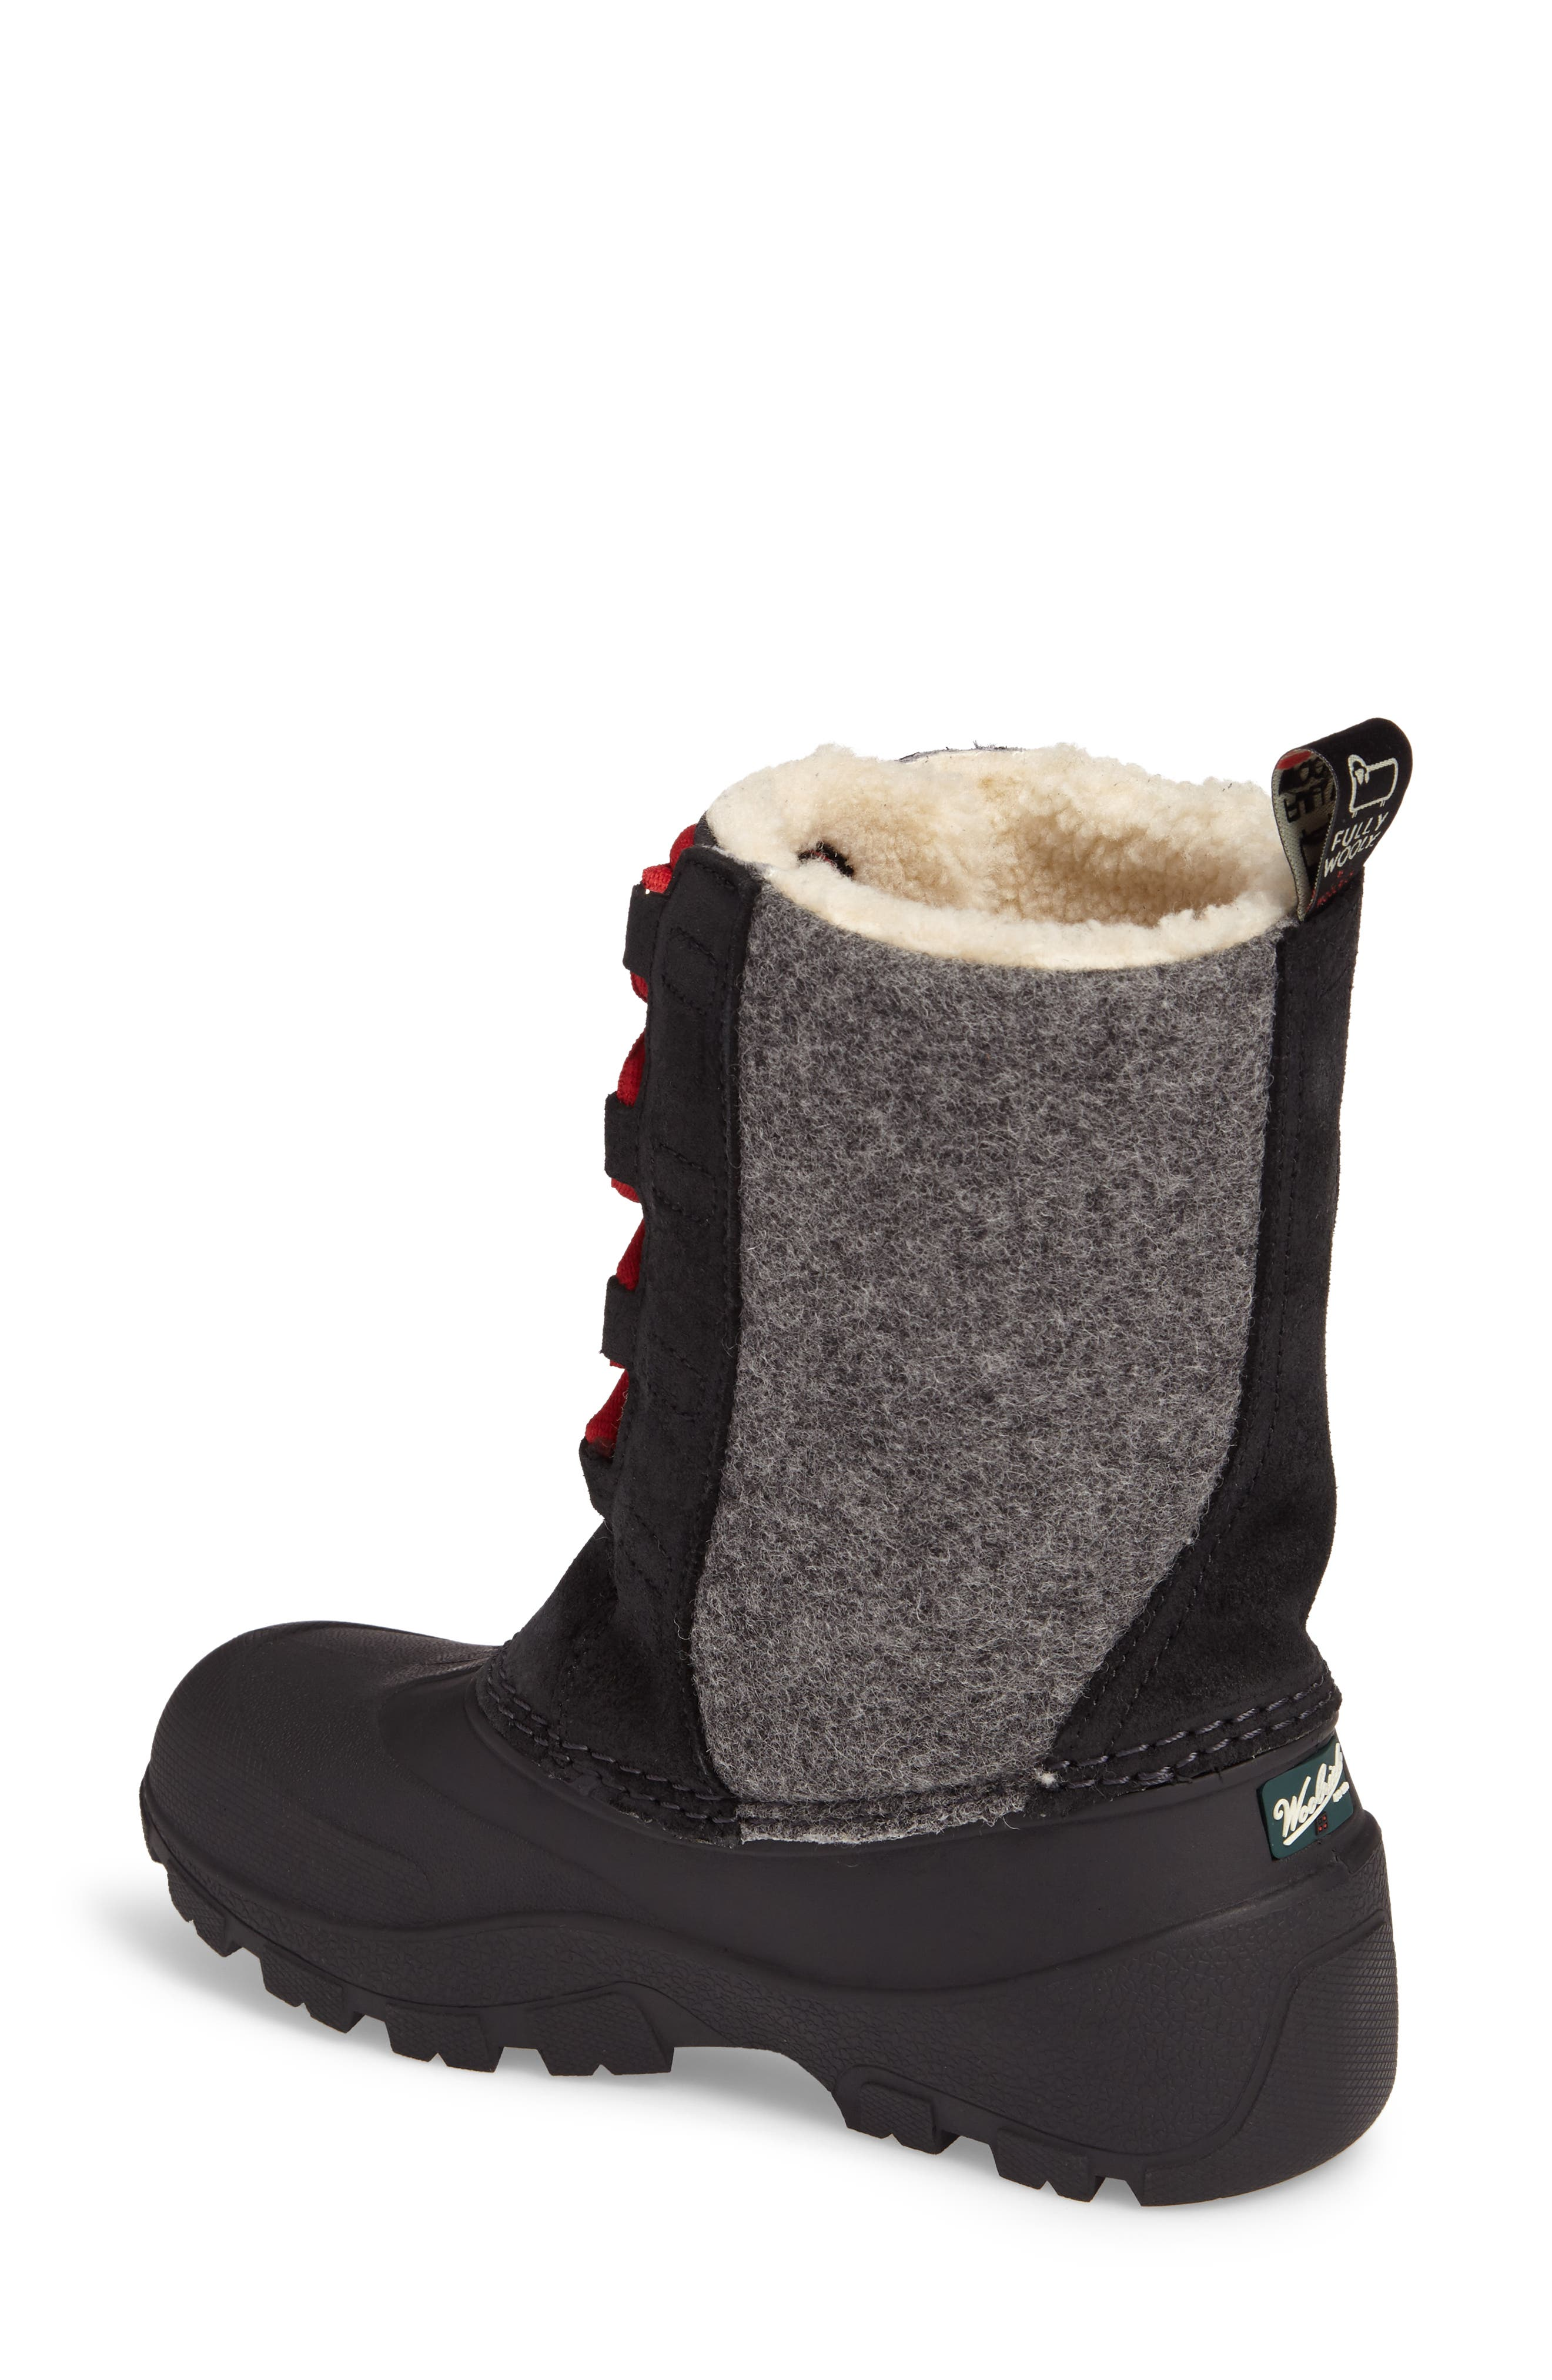 Alternate Image 2  - Woolrich Fully Wooly Tundracat Waterproof Insulated Winter Boot (Women)